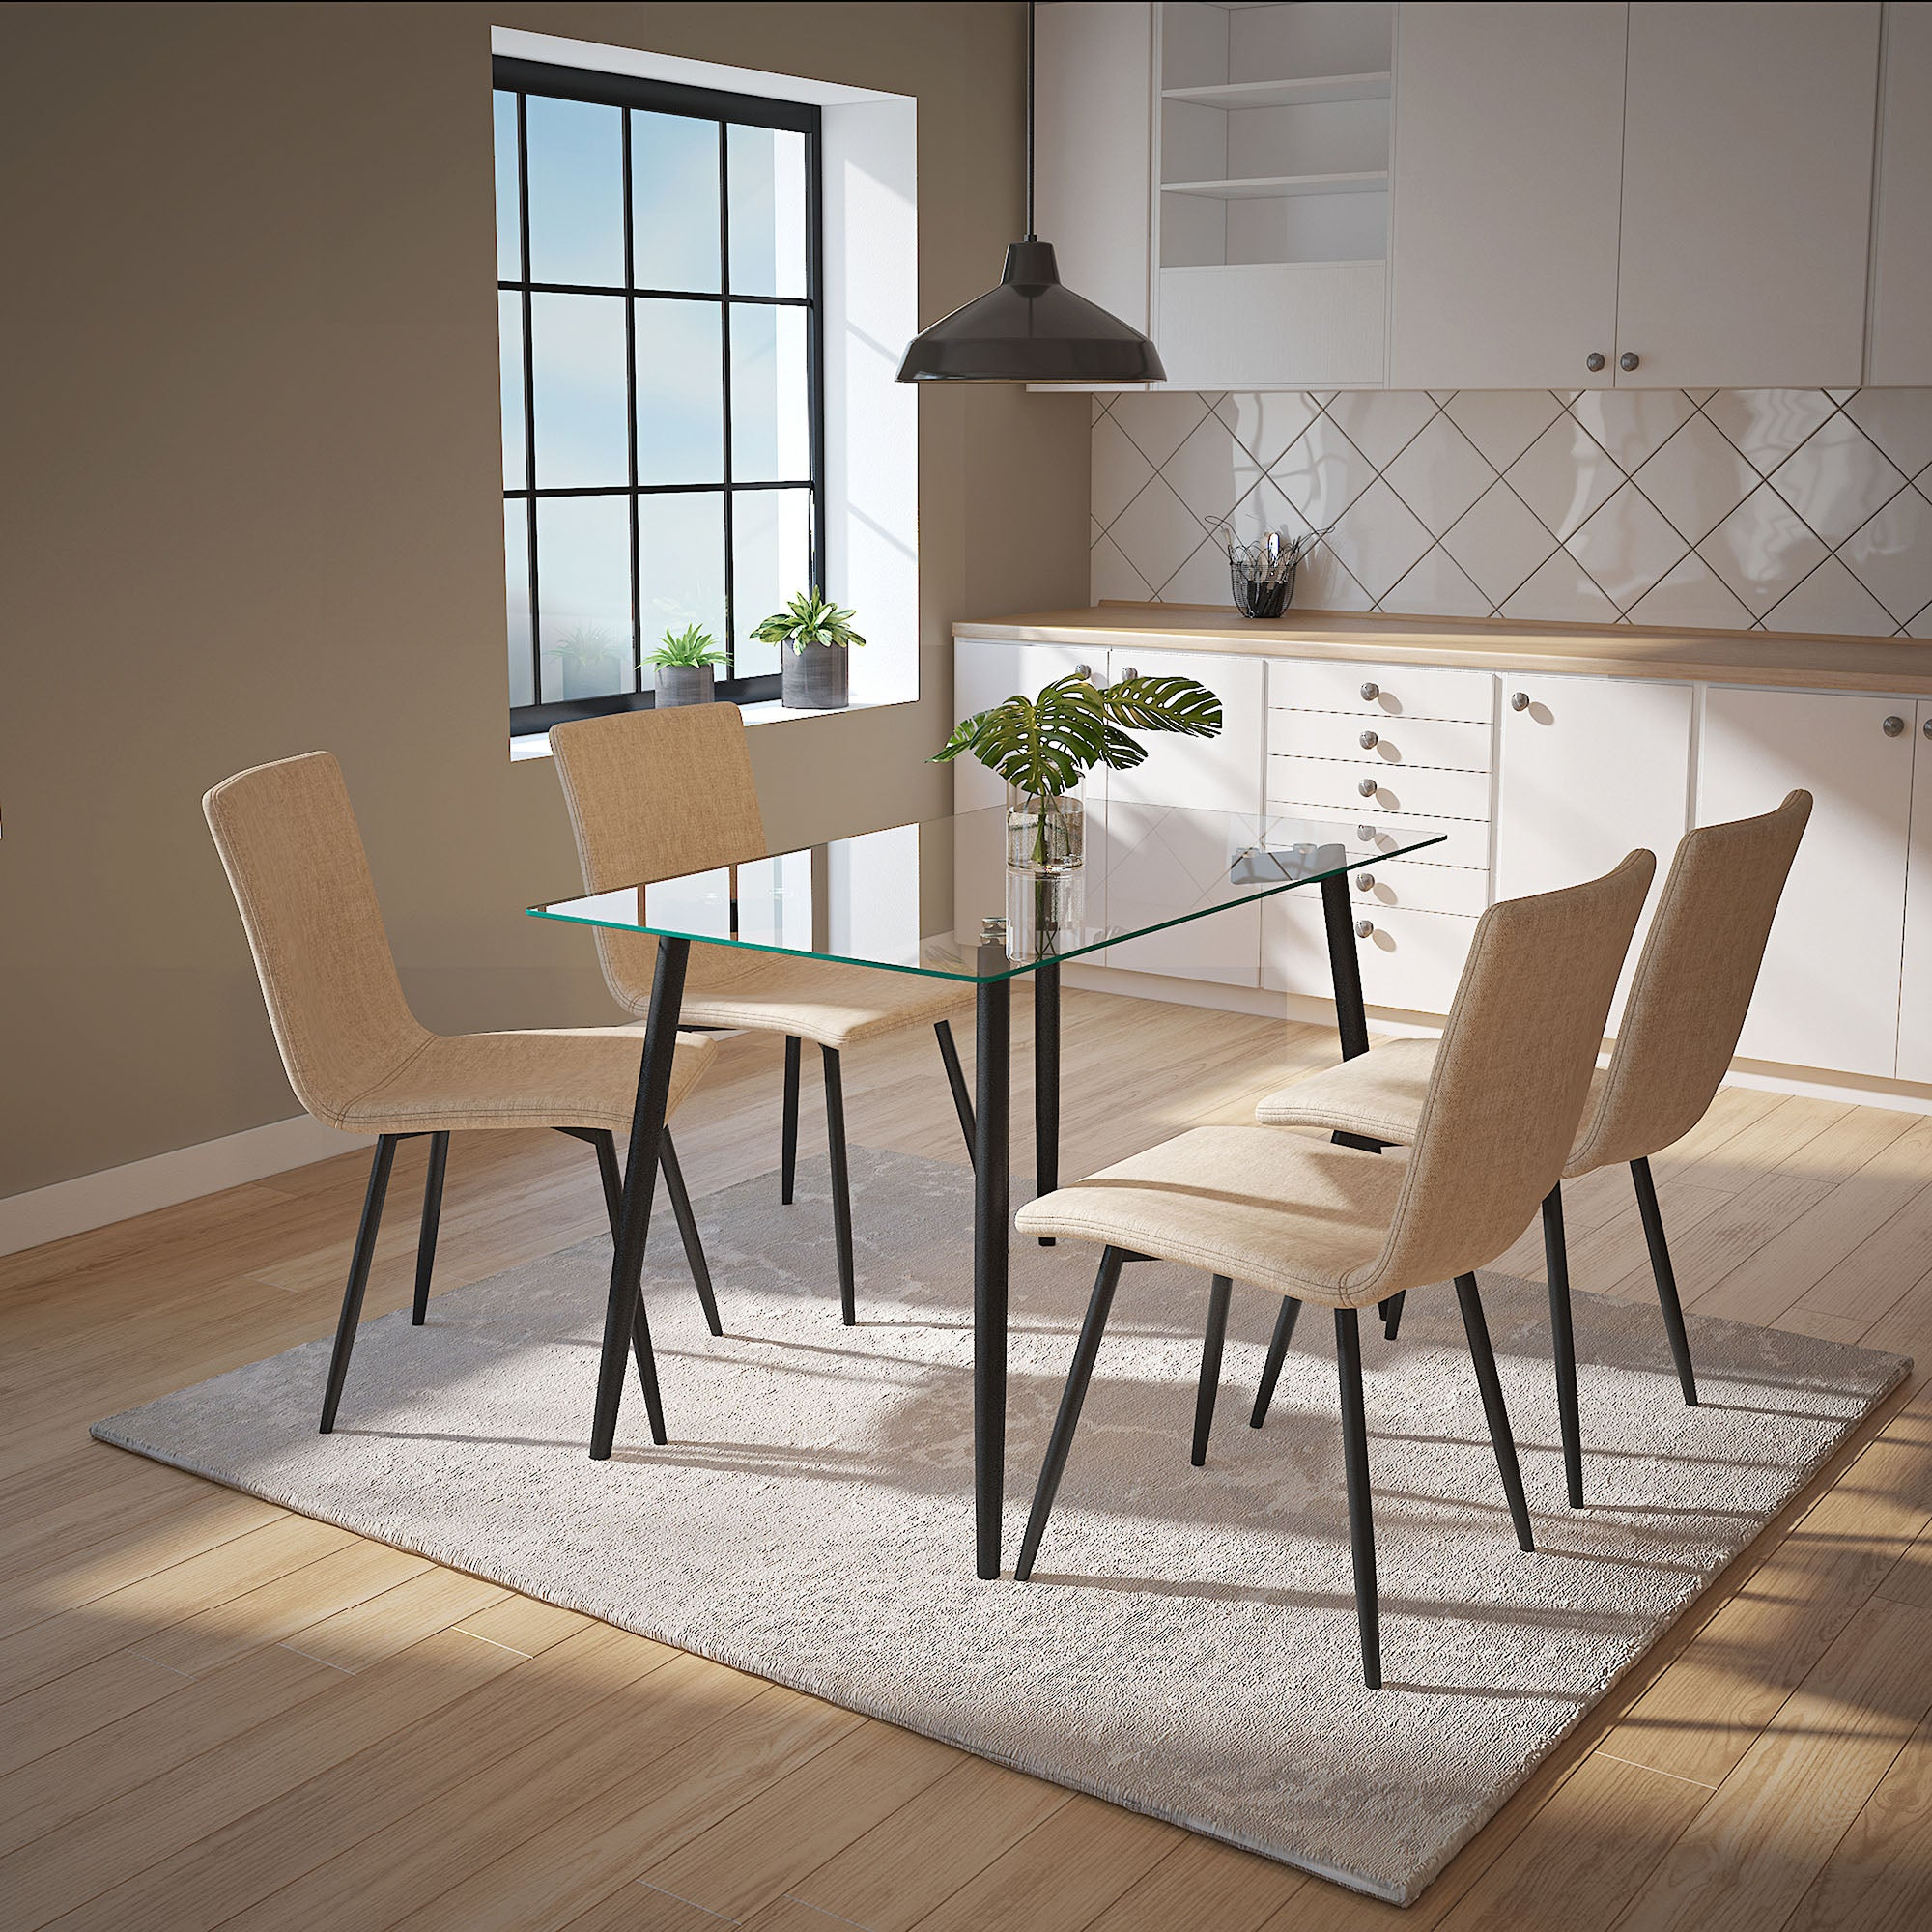 Todd/Nora 5pc Dining Set, Black/Beige